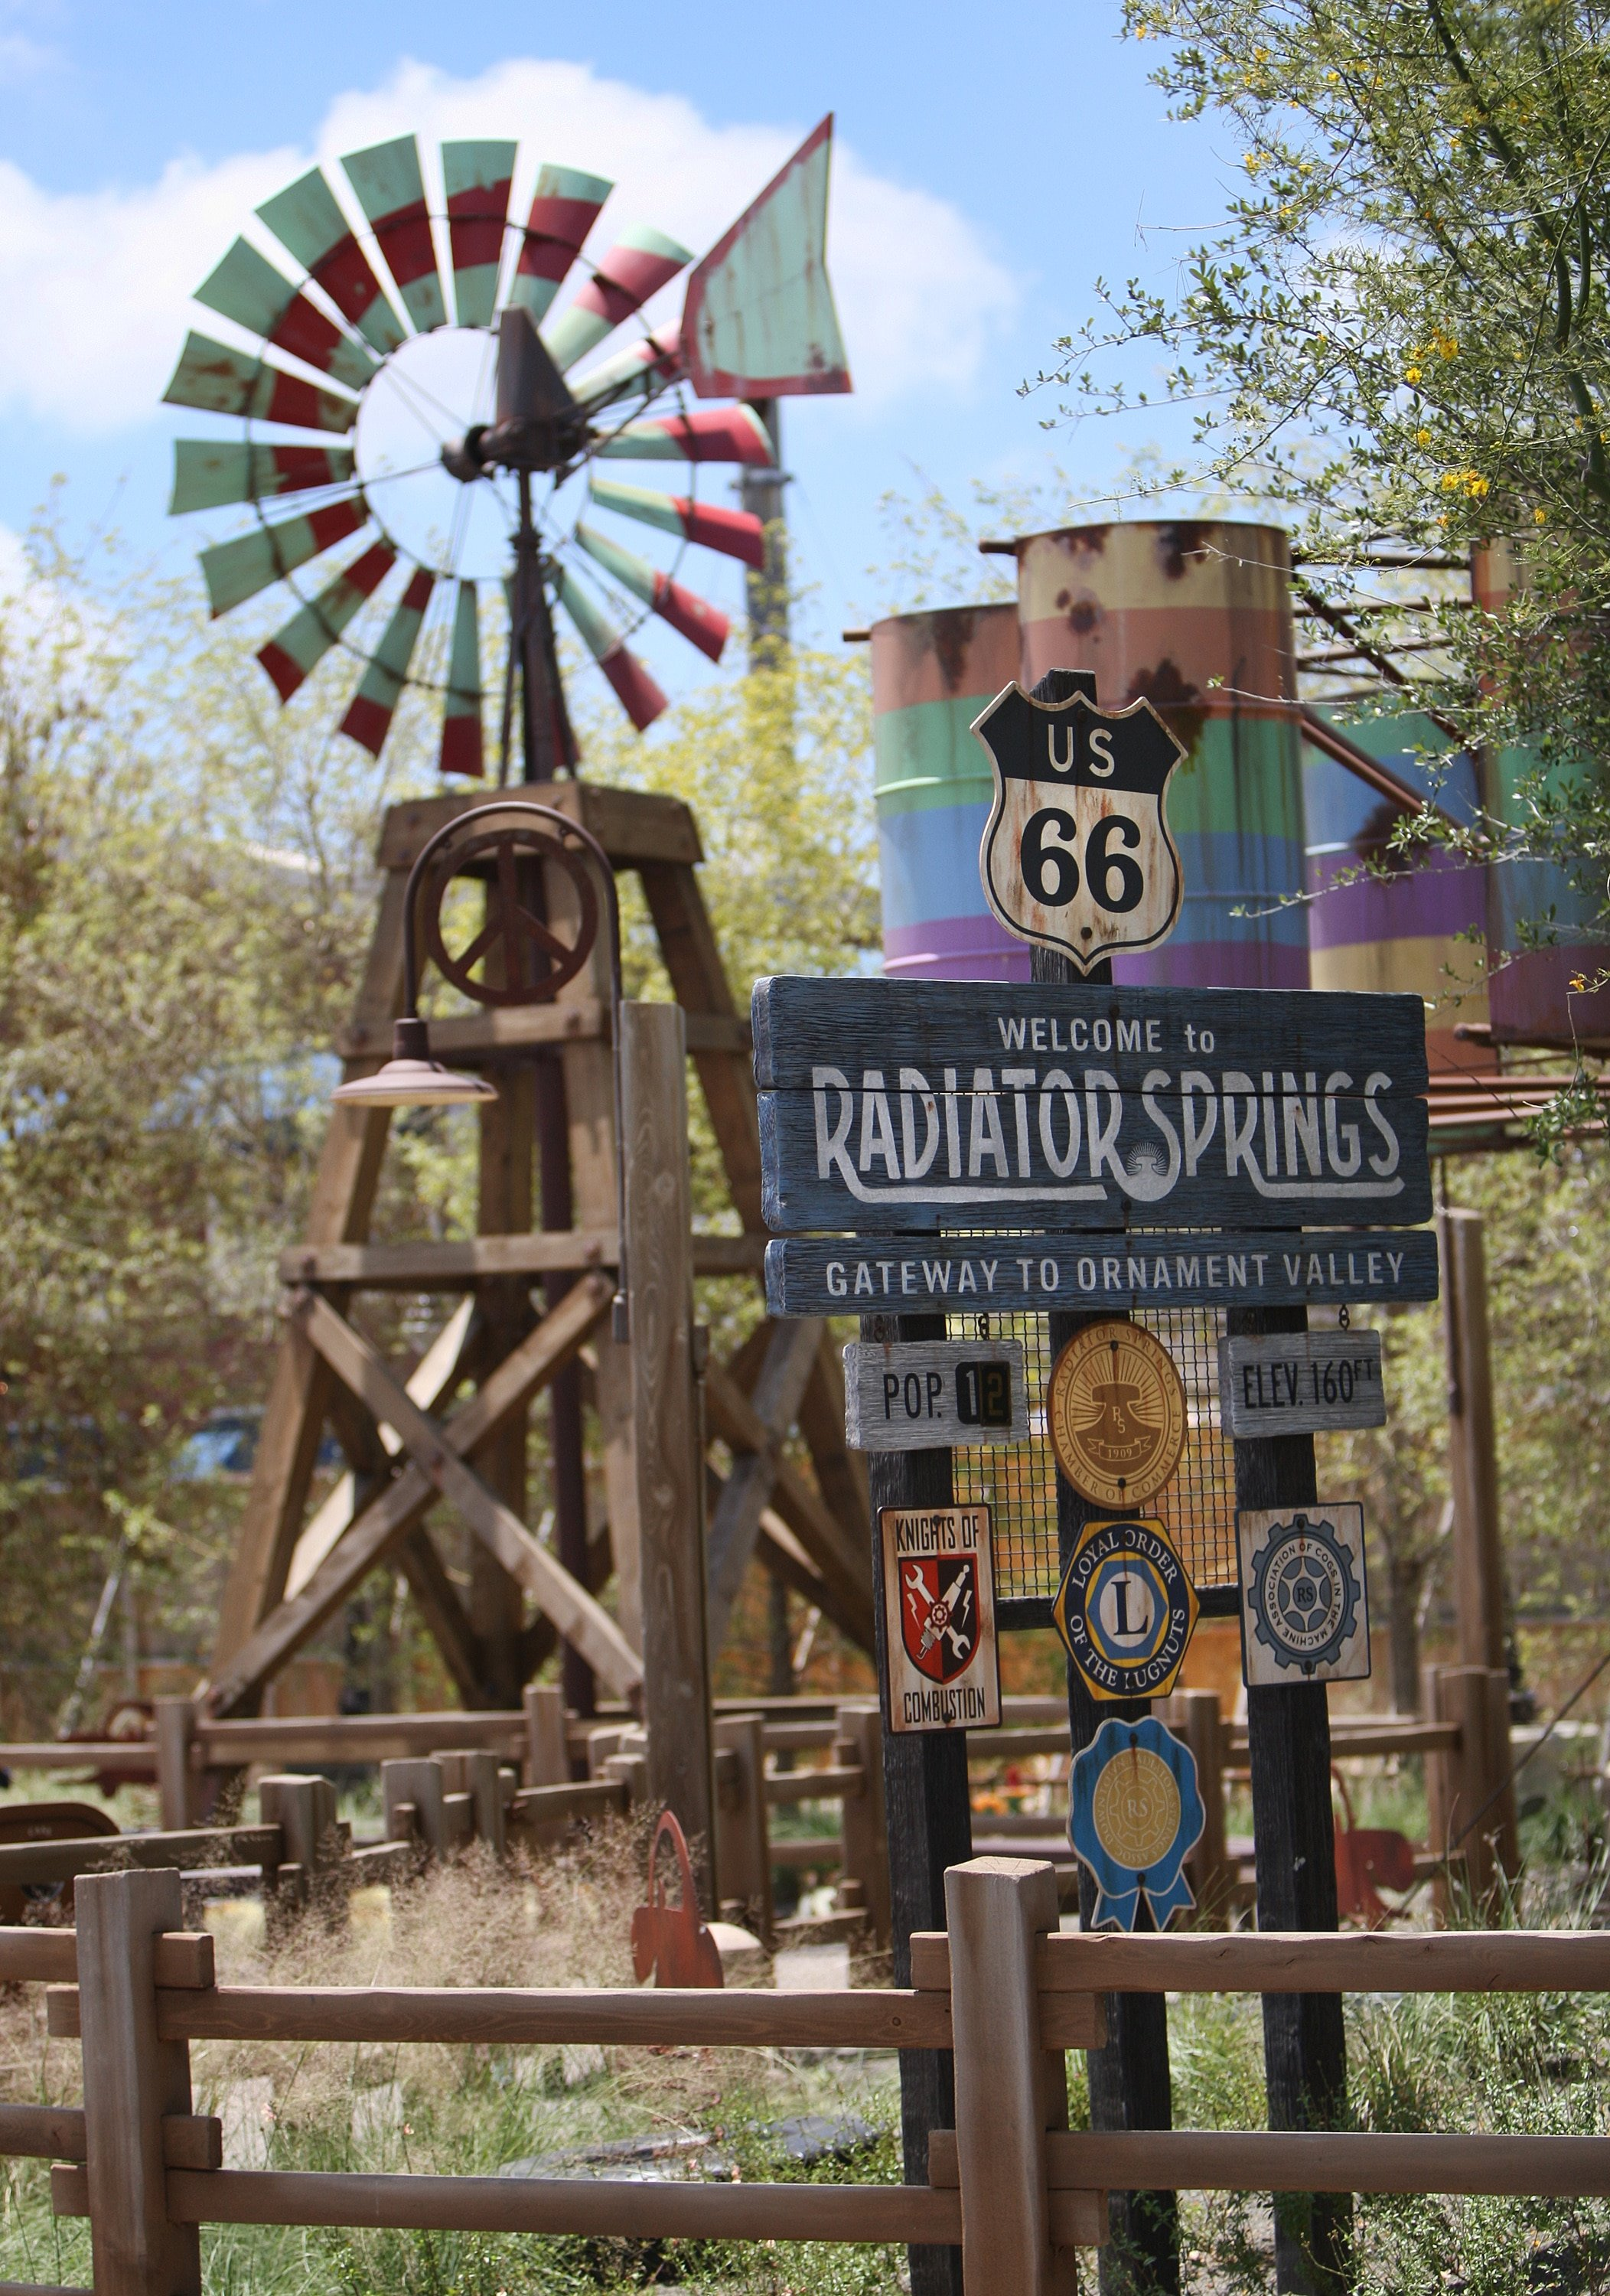 Cars Land at Disney California Adventure is home to Radiator Springs Racers